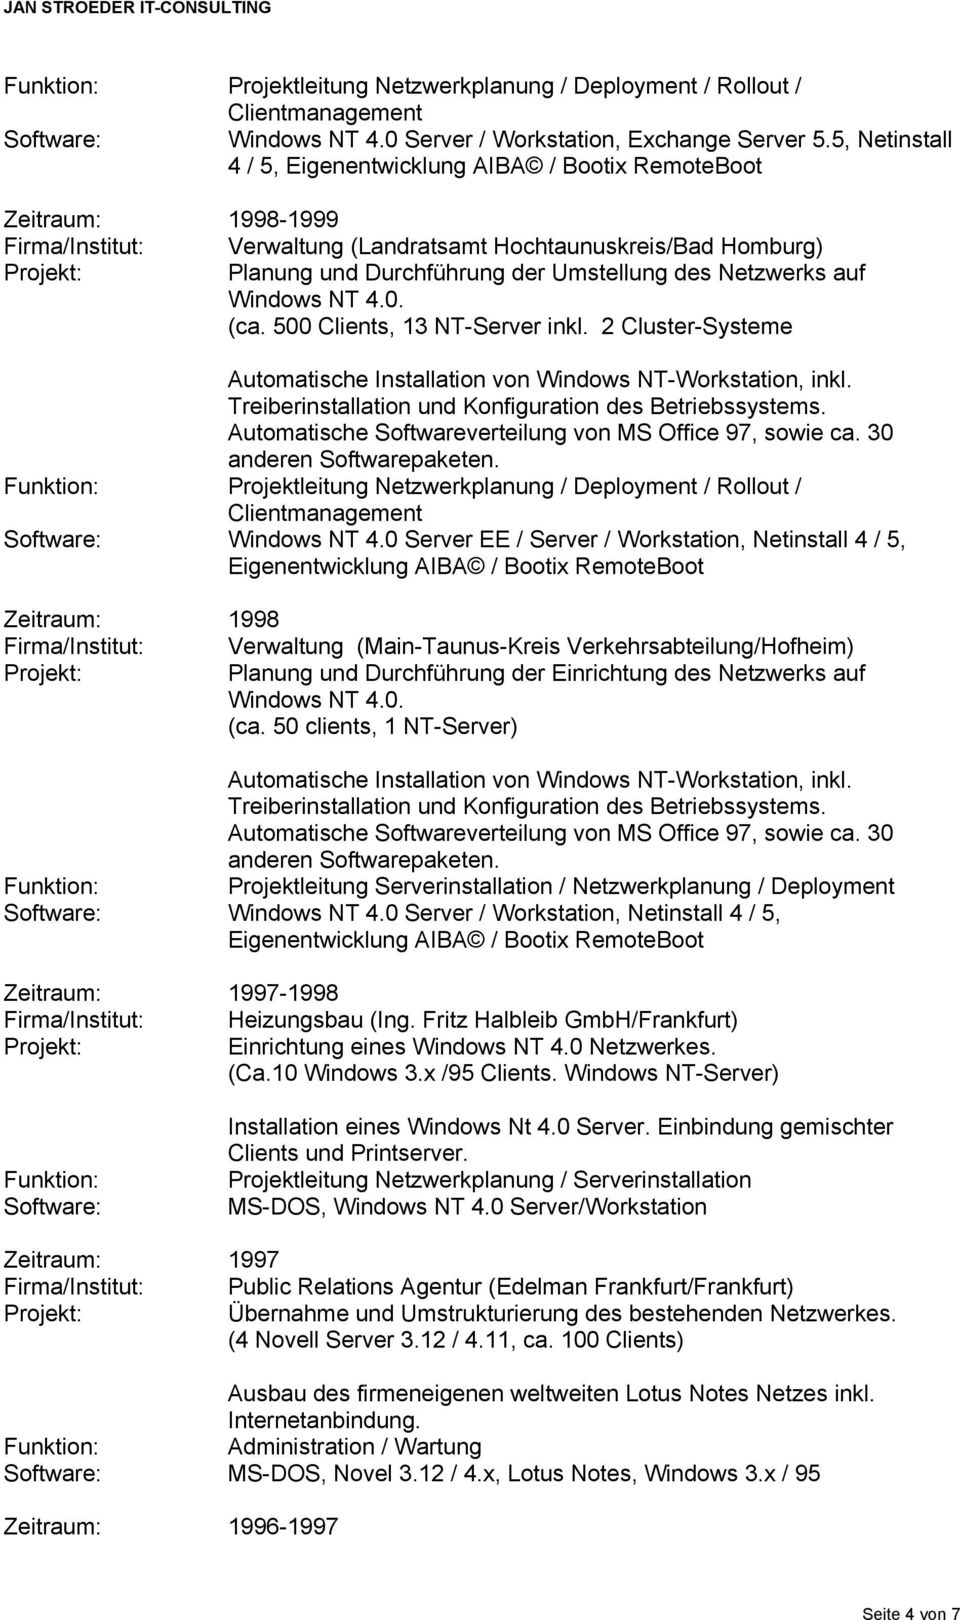 Netzwerks auf Windows NT 4.0. (ca. 500 Clients, 13 NT-Server inkl. 2 Cluster-Systeme Automatische Installation von Windows NT-Workstation, inkl.